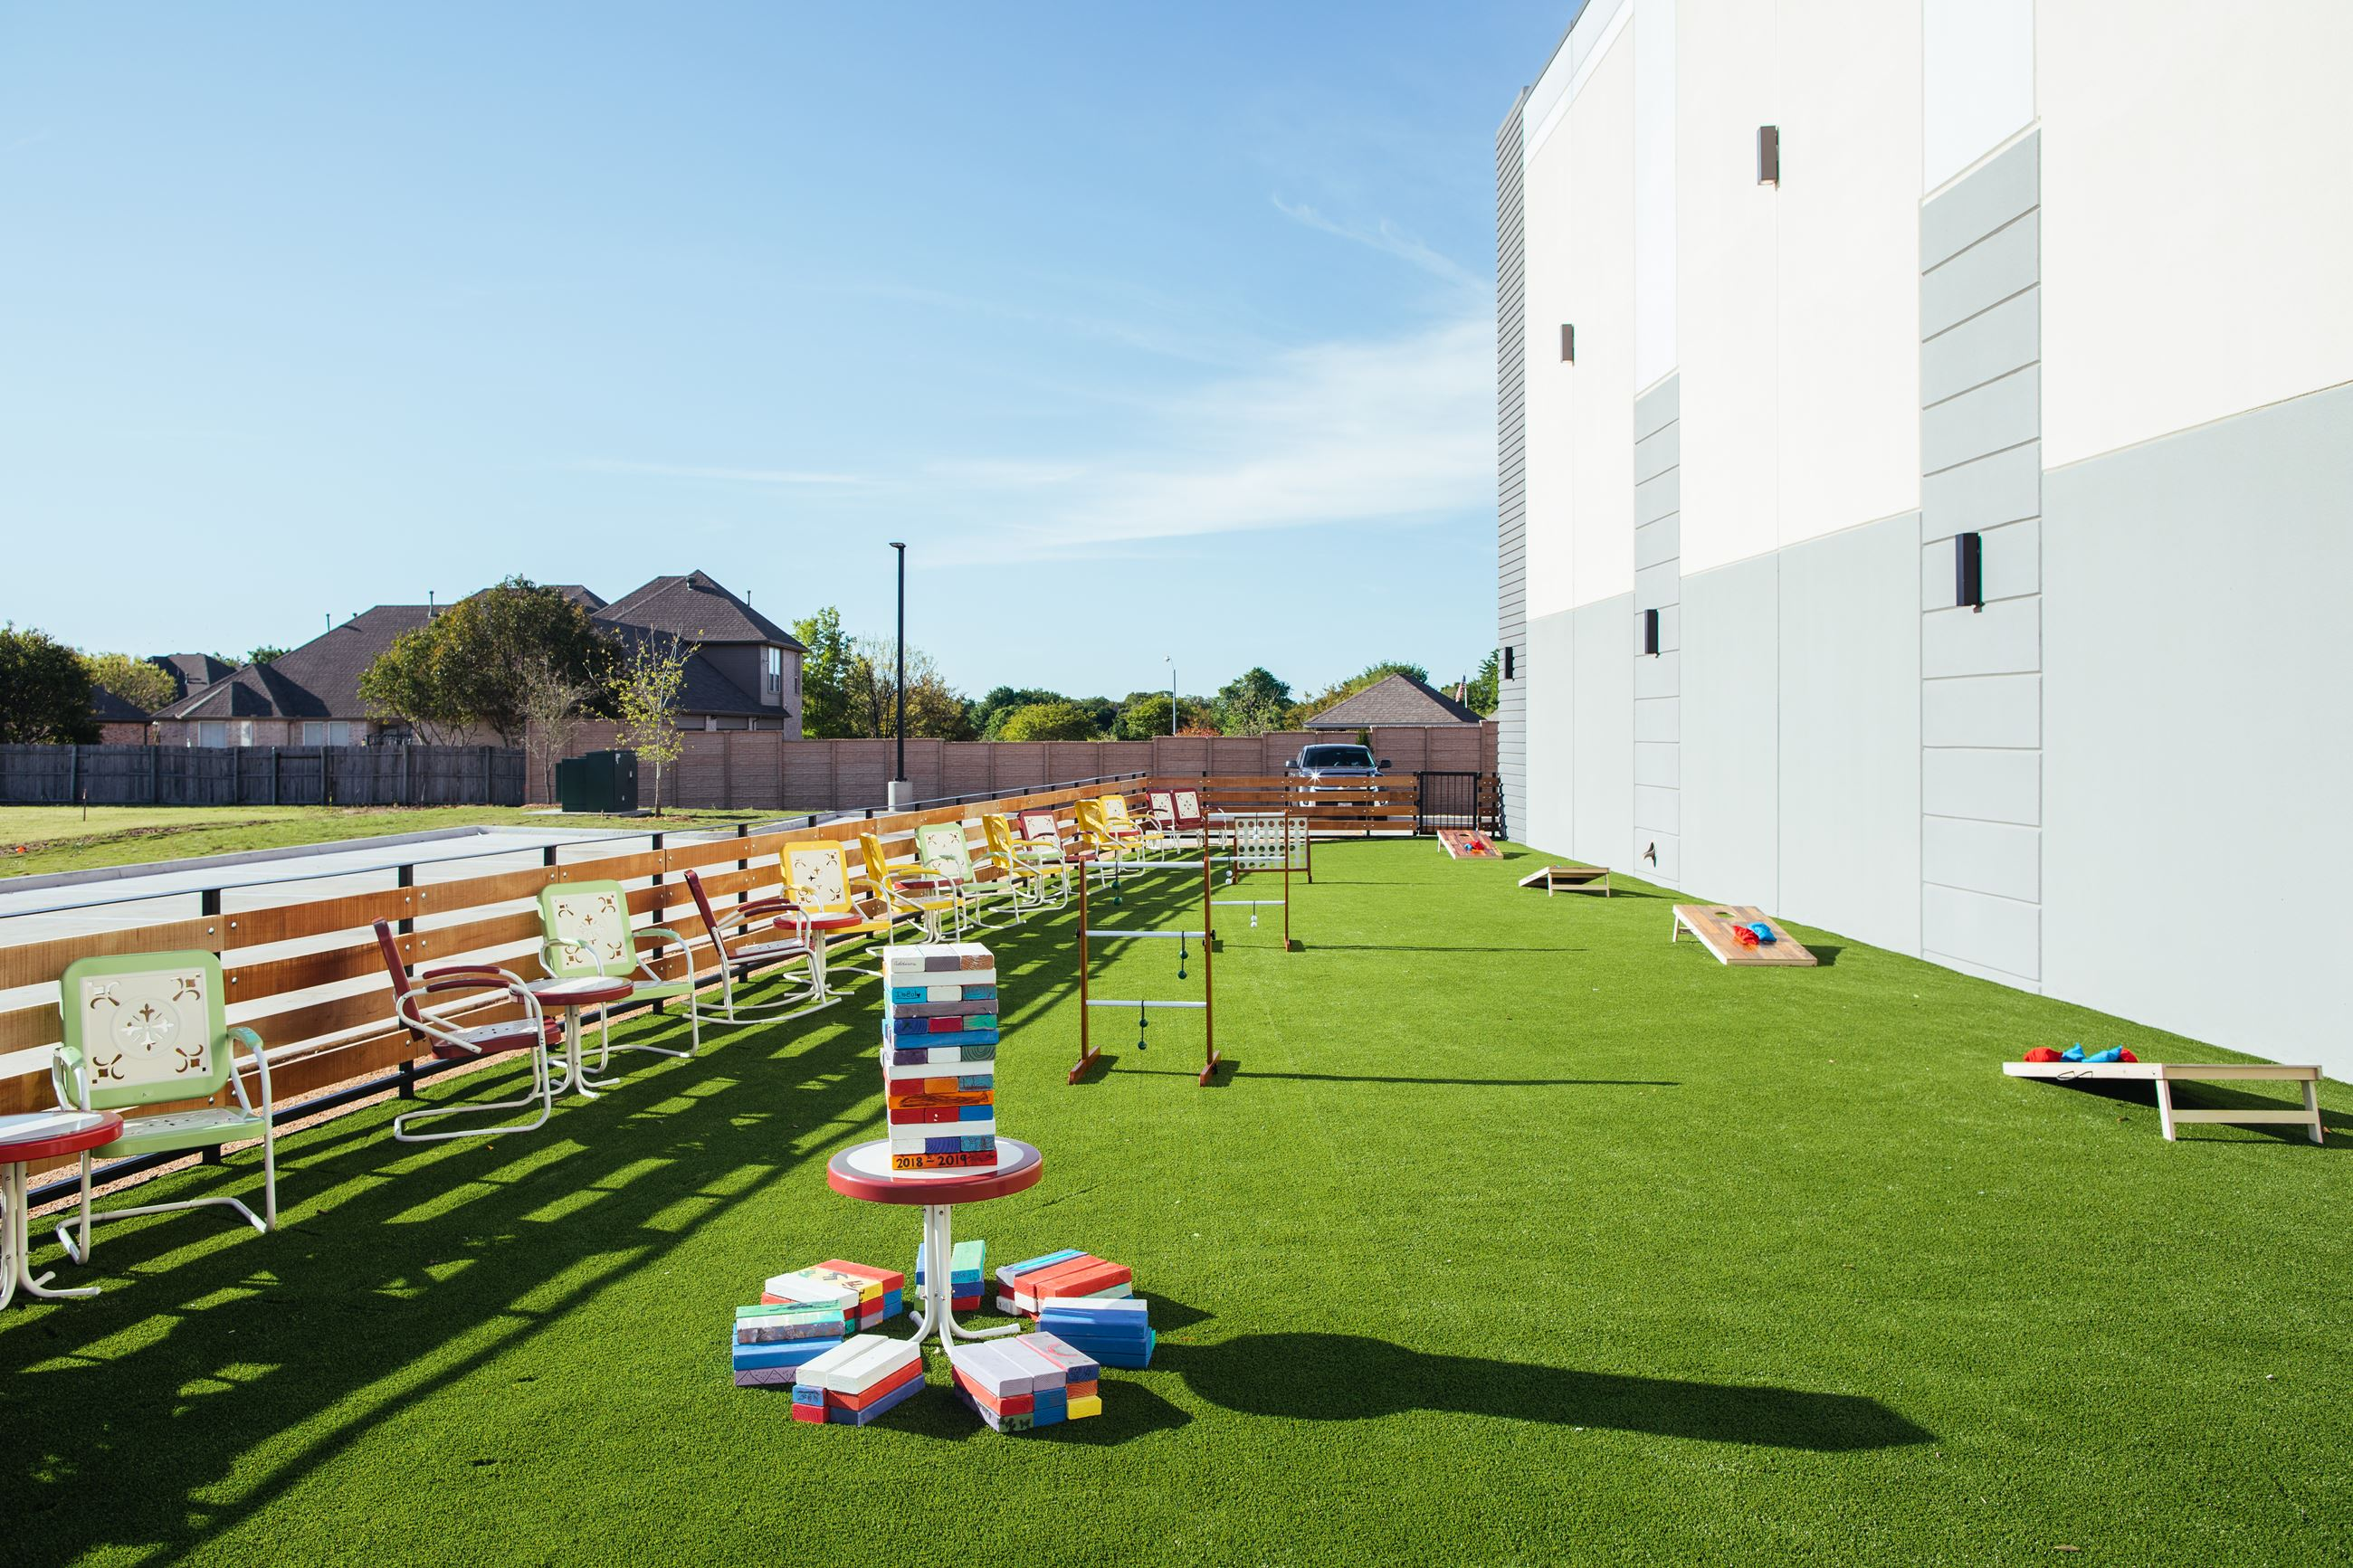 Vetted Well play area